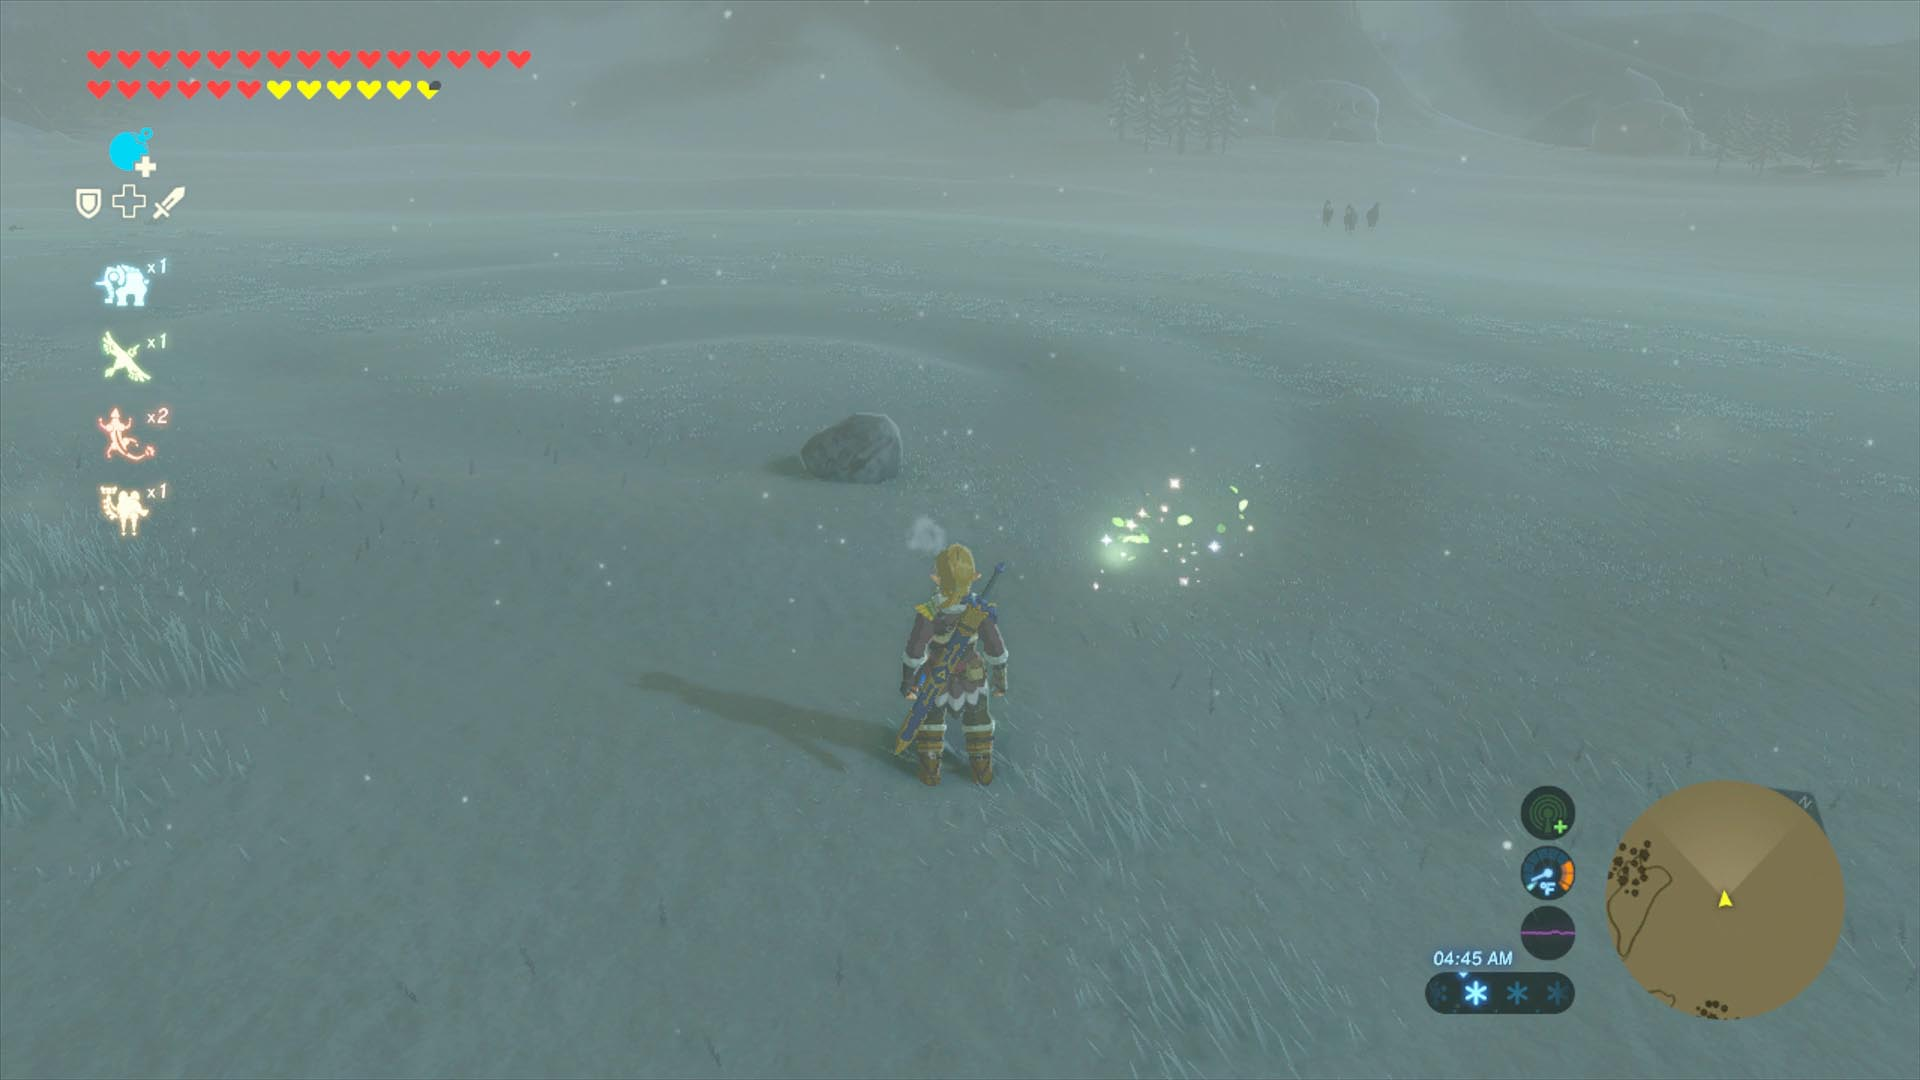 Zelda: Breath of the Wild's Hard Mode uses separate save slot